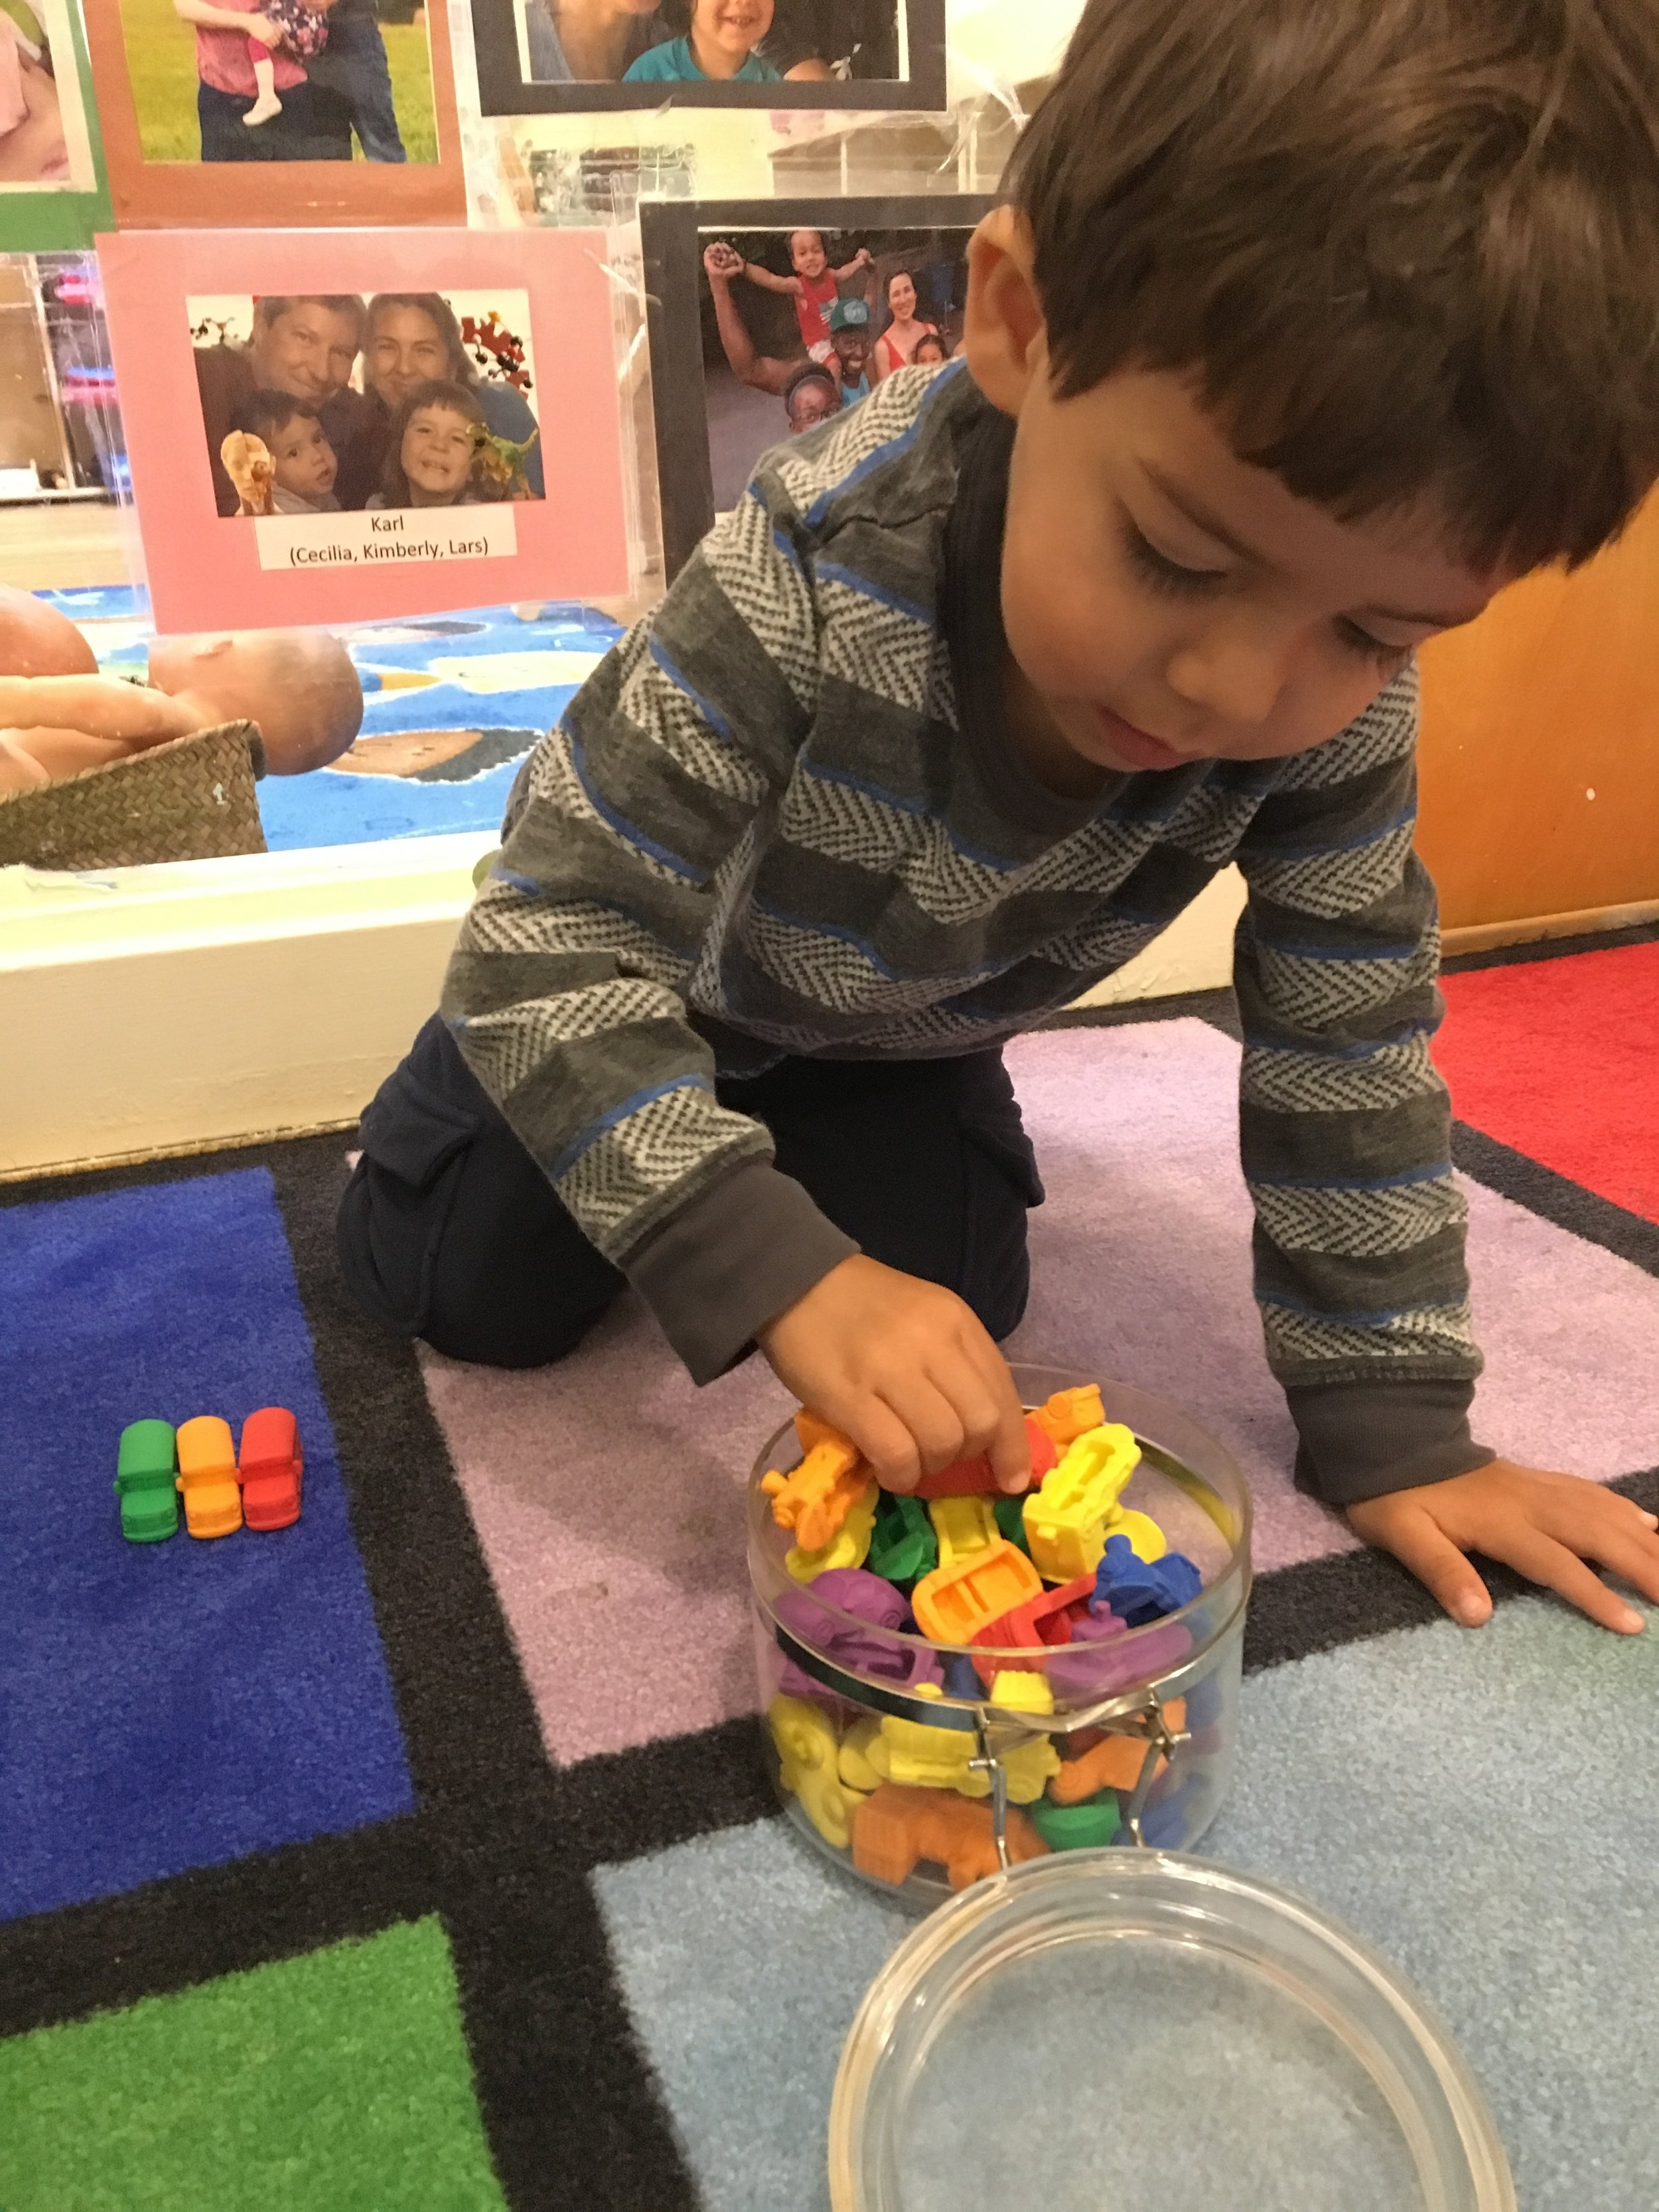 - Sorting Manipulatives by one or more attributes.